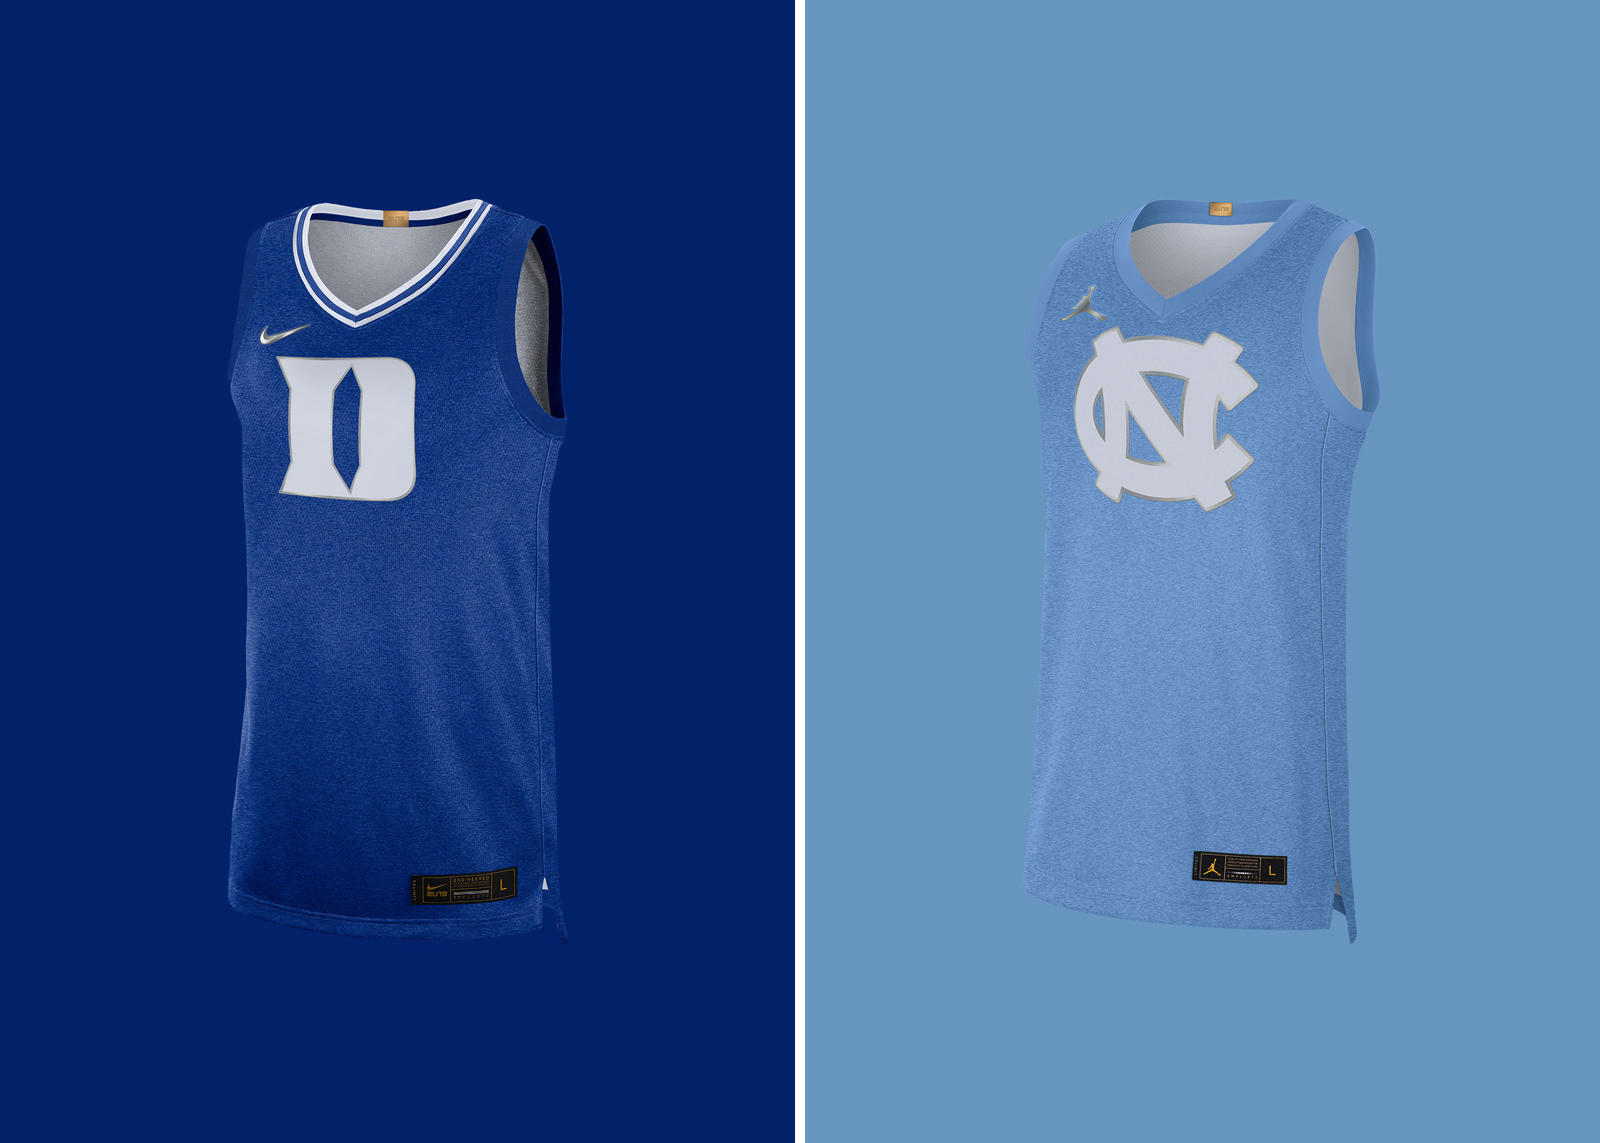 Duke UNC Basketball Rivalry Jerseys Official Images 0